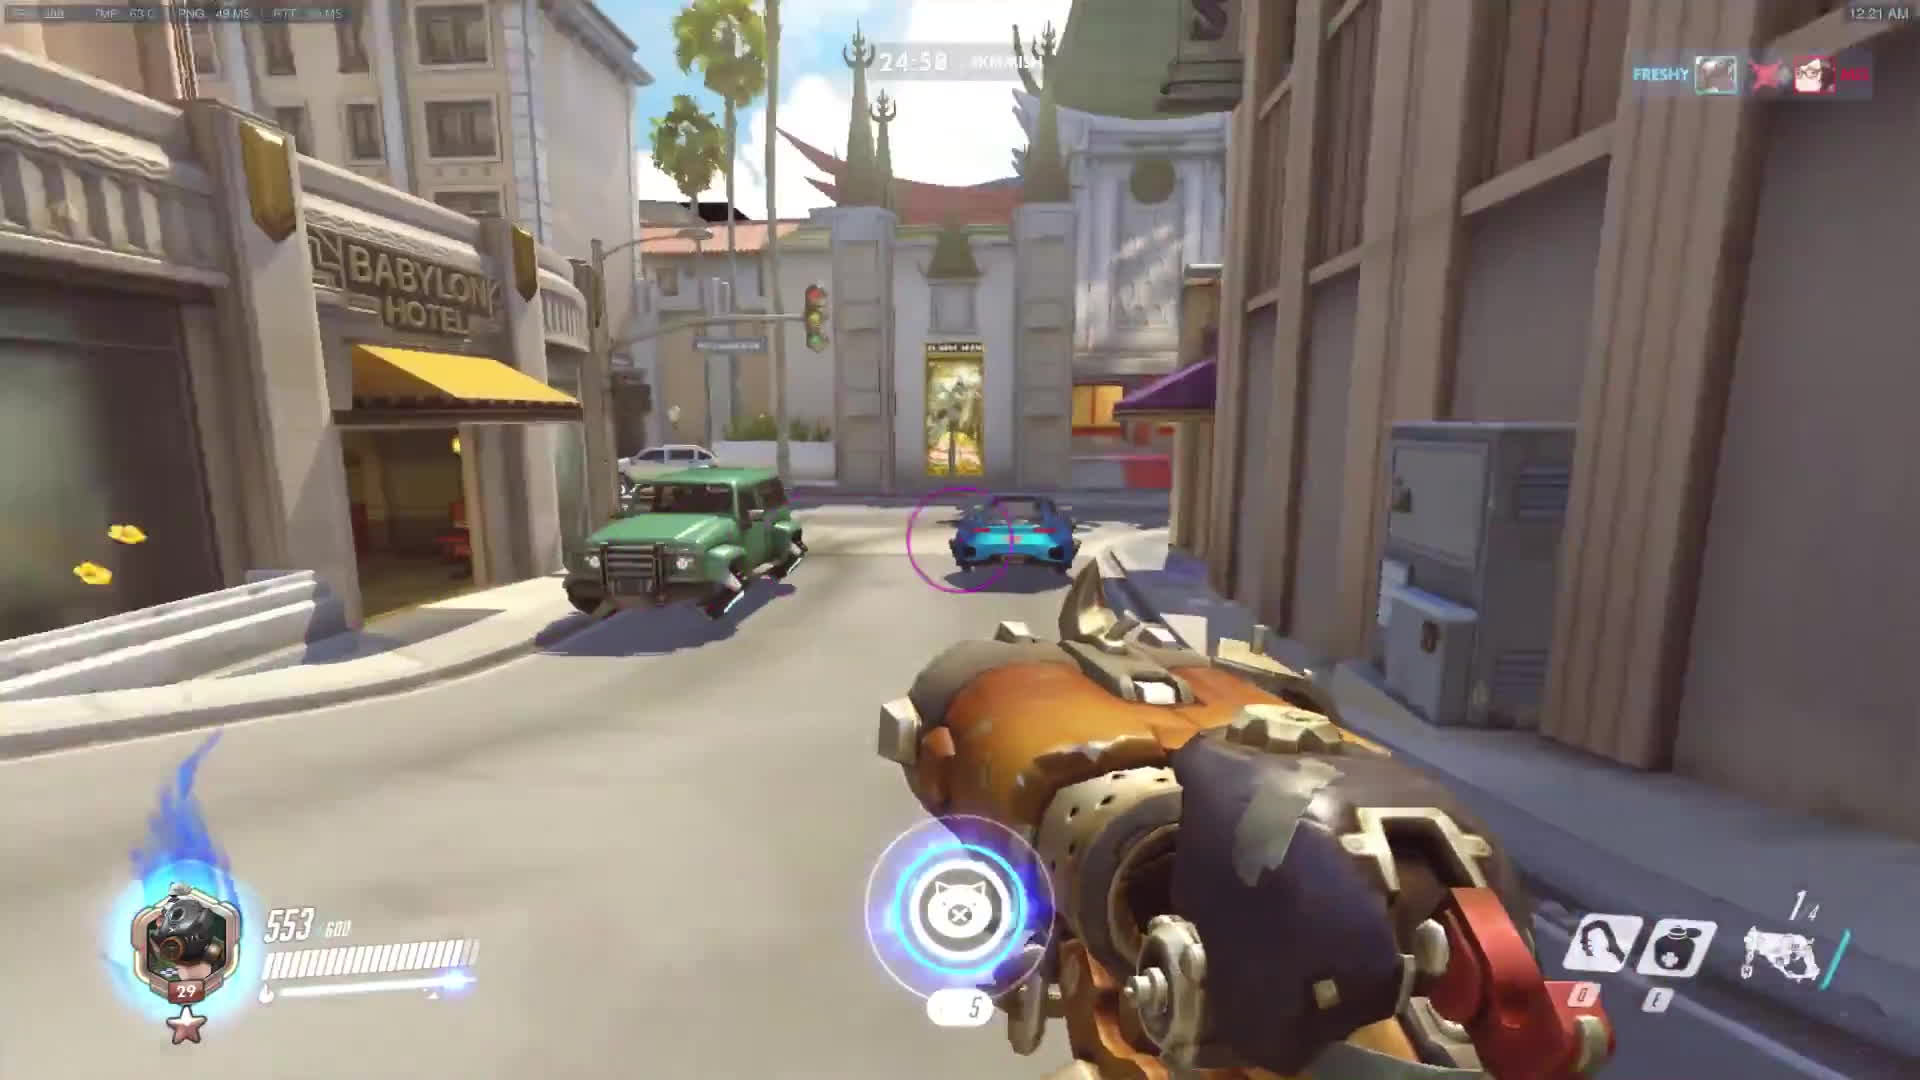 overwatch, ptr, roadhog, Overwatch - PTR Roadhog can one-shot with ease GIFs